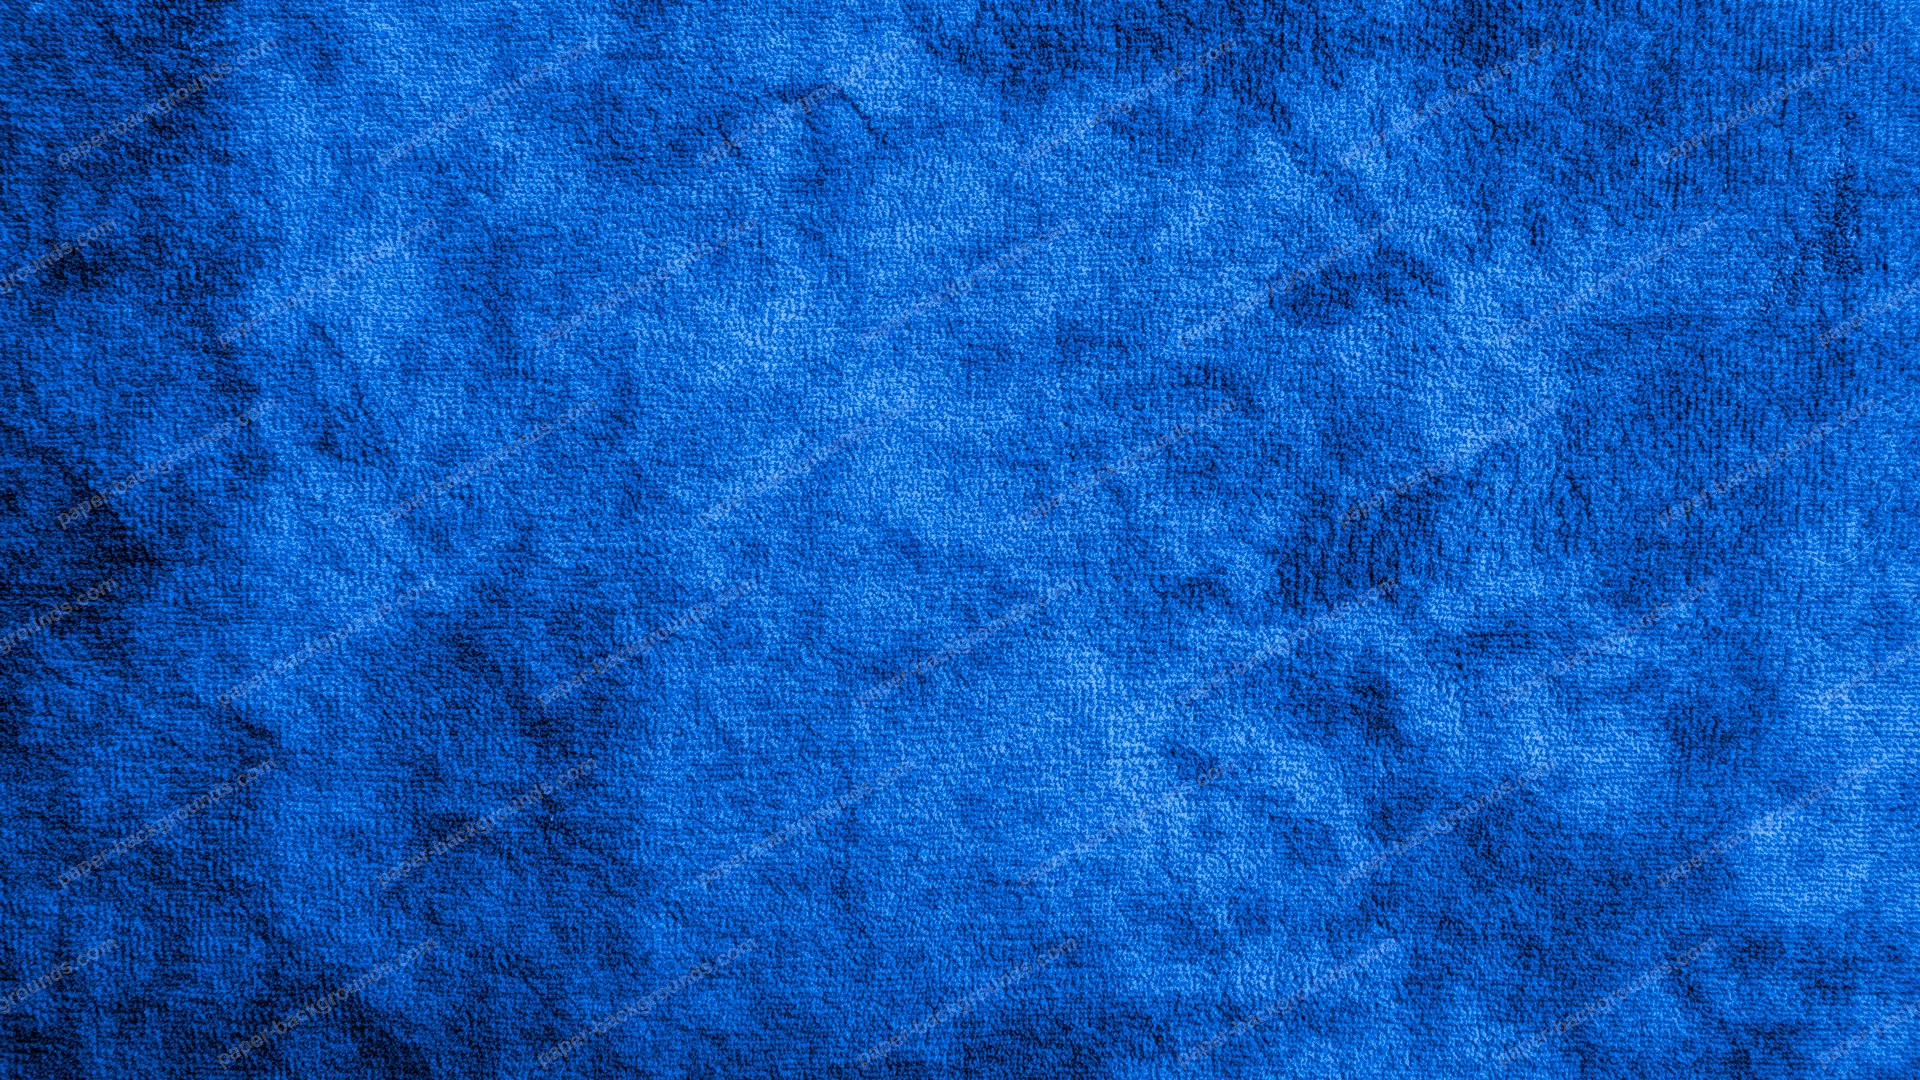 Paper Backgrounds Blue Carpet Fine Fur Texture